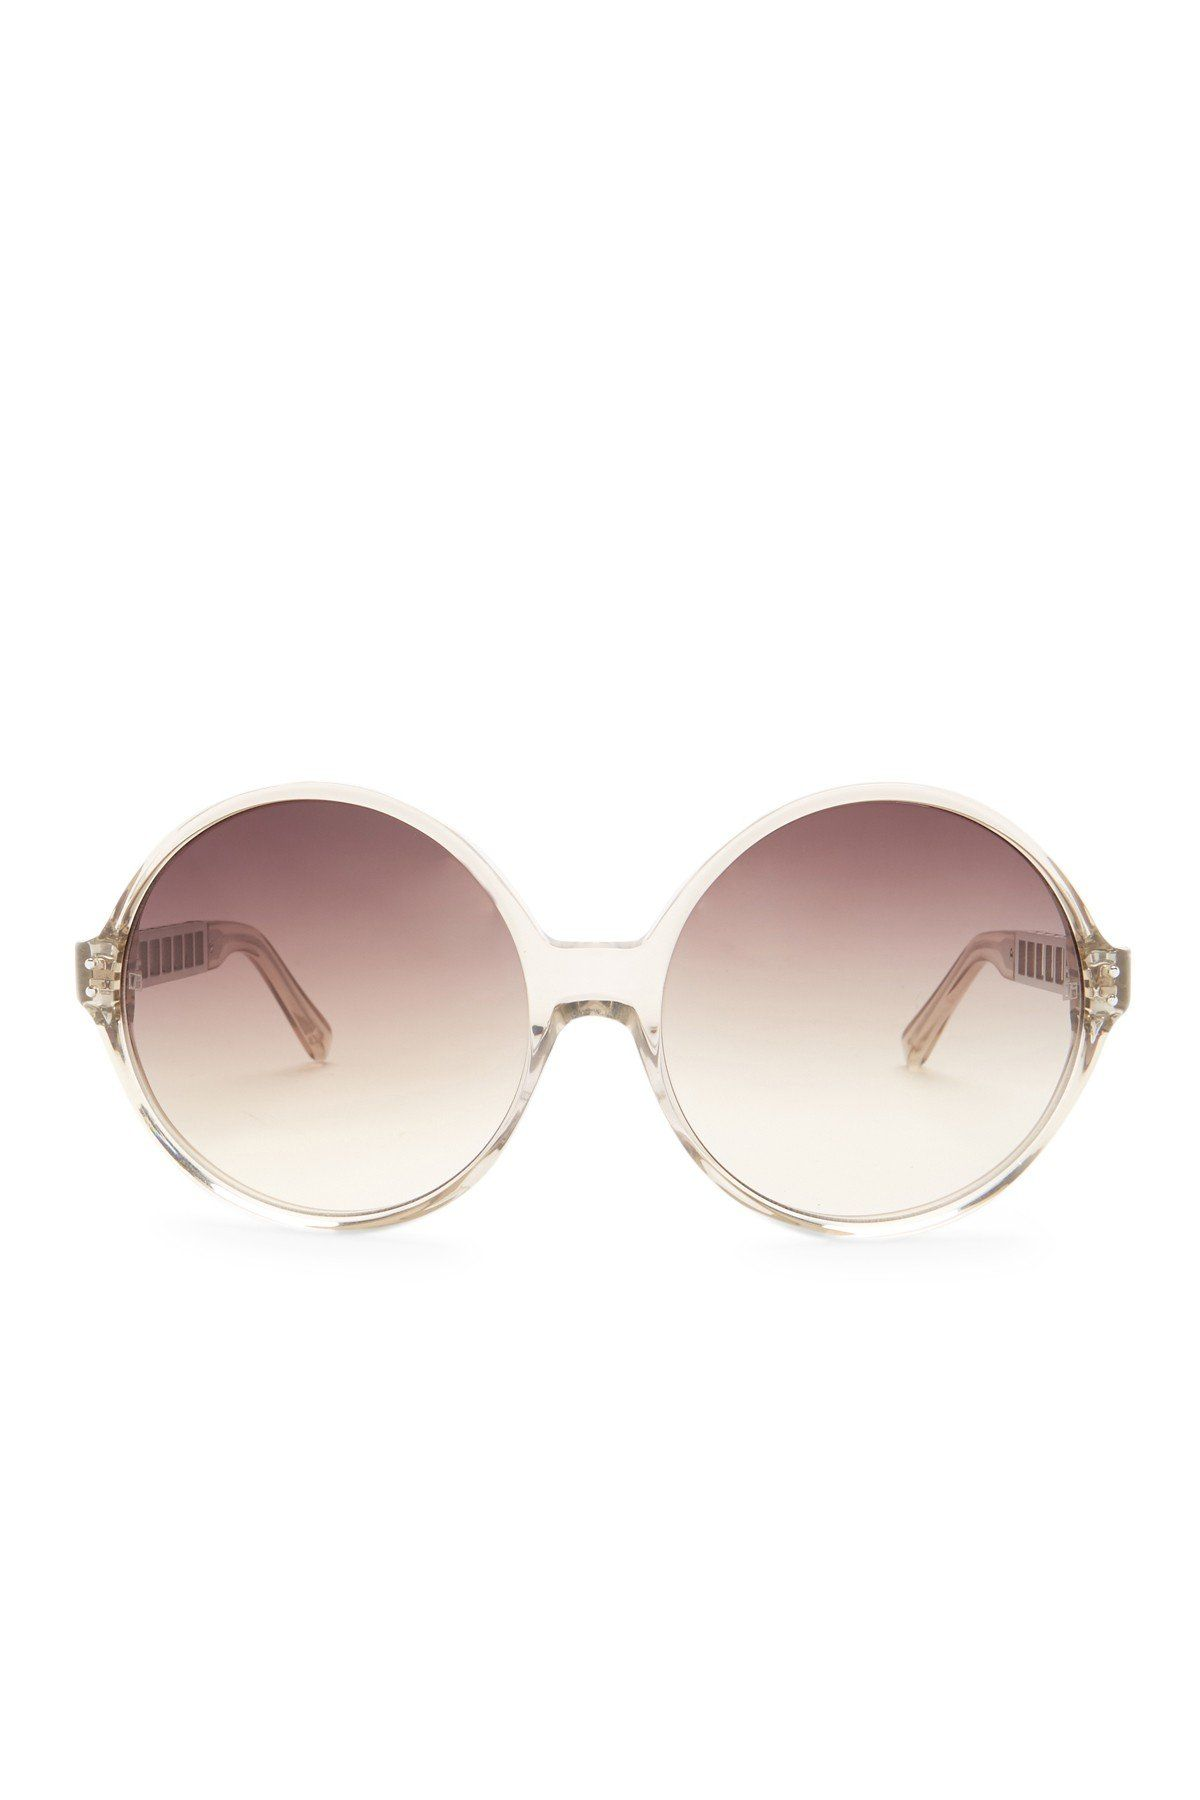 5b6b8ba4103d Women s Round Sunglasses